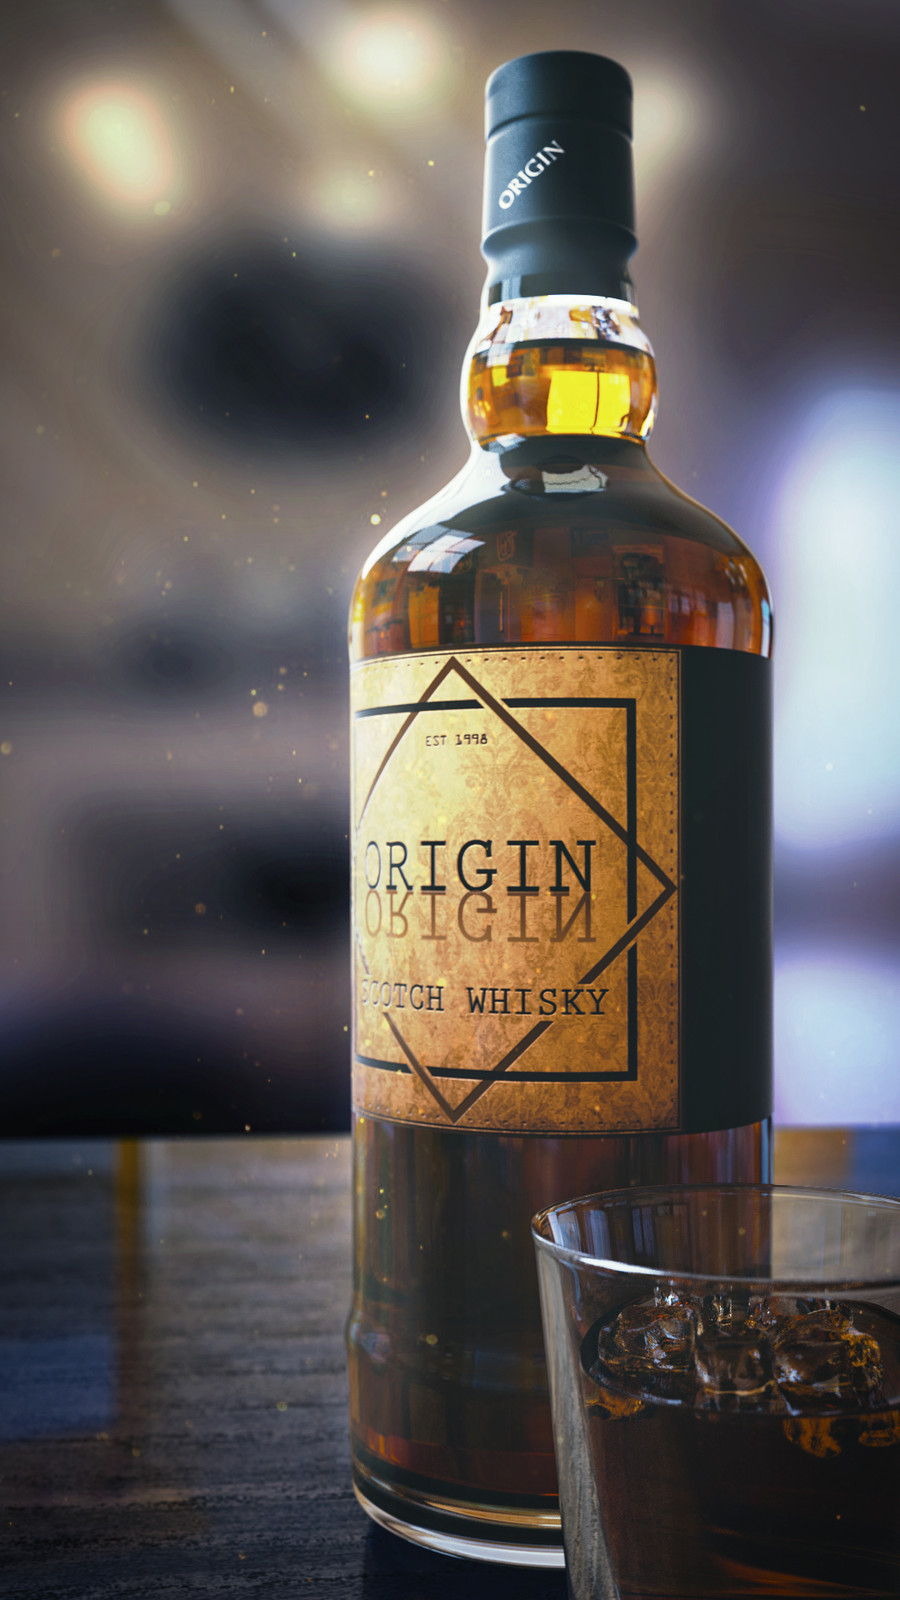 ORIGIN Whisky